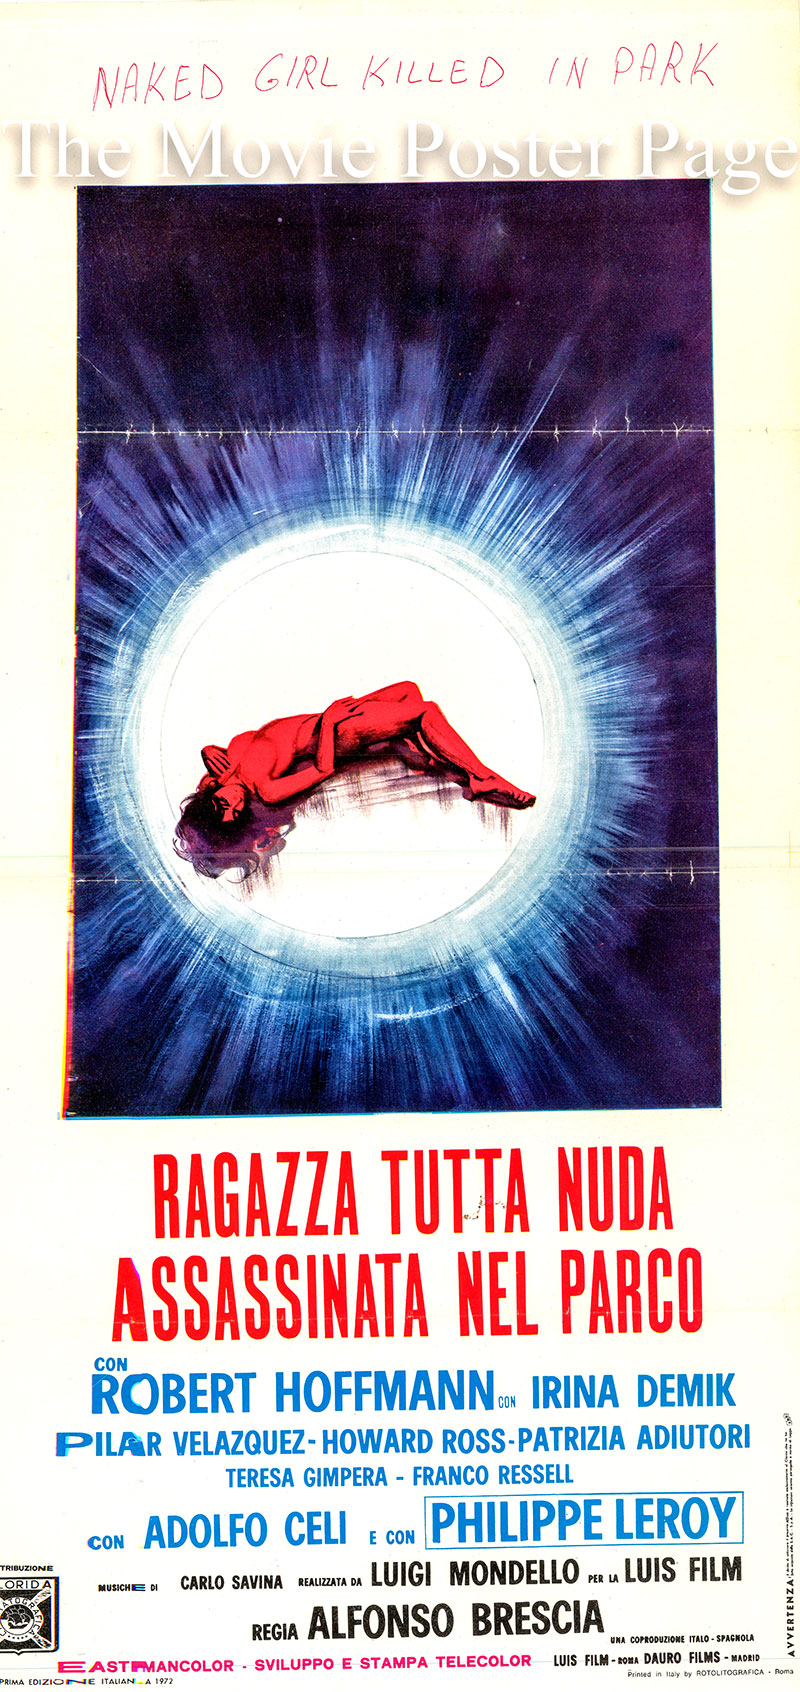 Pictured is an Italian locandina promotional poster for the 1972 Alfonso Brescia film Ragazza Tutta Nuda Assassinate del Parco, starring Robert Hoffmann as Chris Buyer.